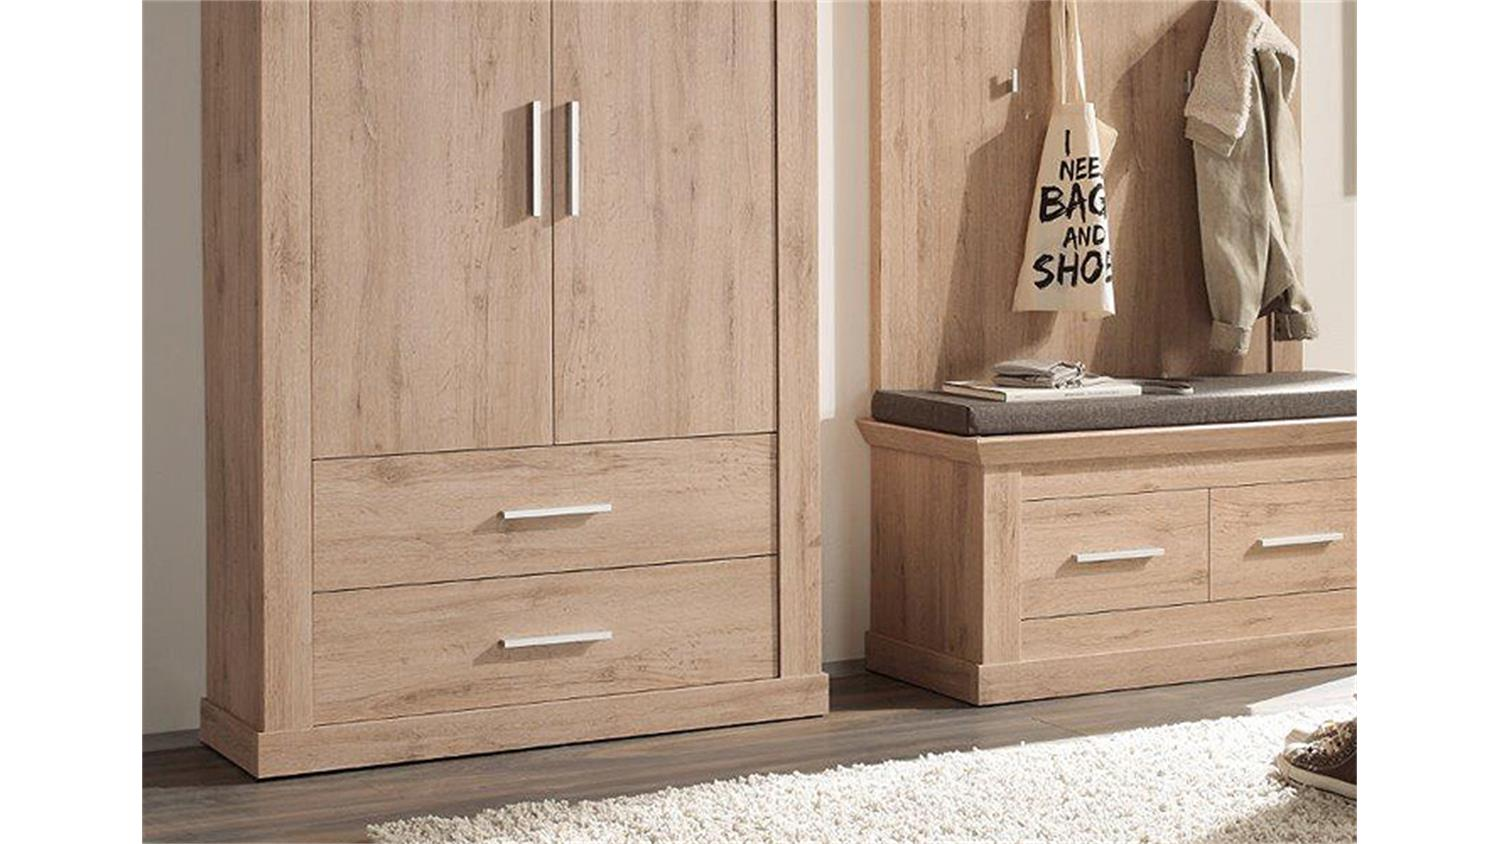 garderoben set 3 savona garderobe denmark eiche 3 teilig. Black Bedroom Furniture Sets. Home Design Ideas